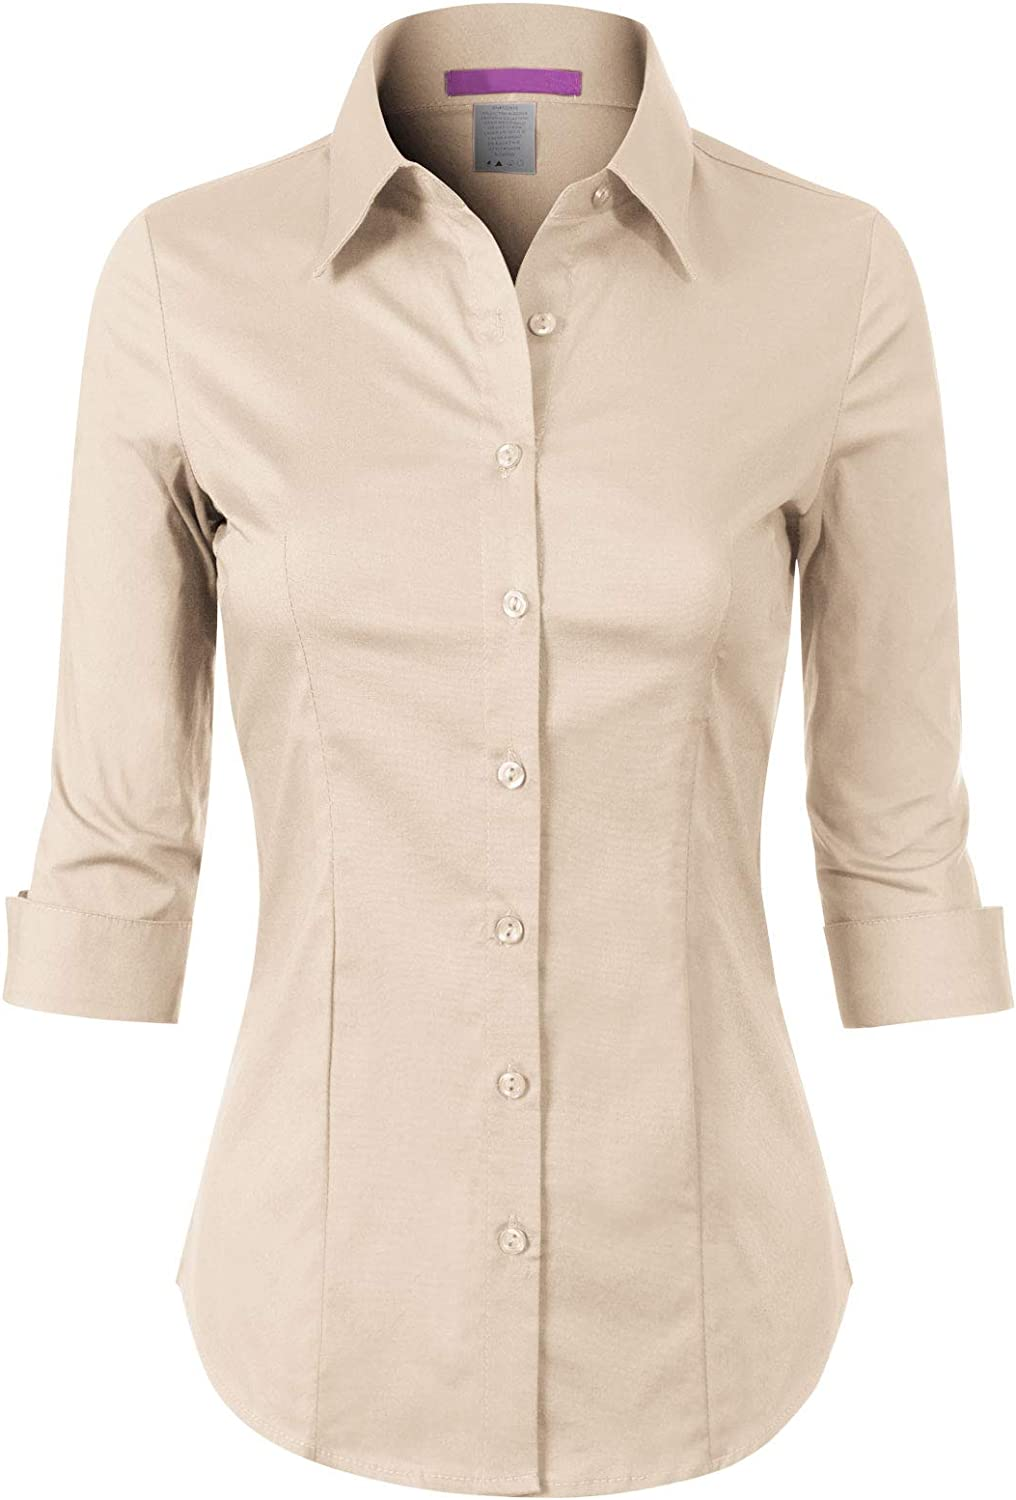 Design by Olivia Women's 3/4 Sleeve Stretchy Button Down Collar Office Formal Casual Blouse Shirts Top